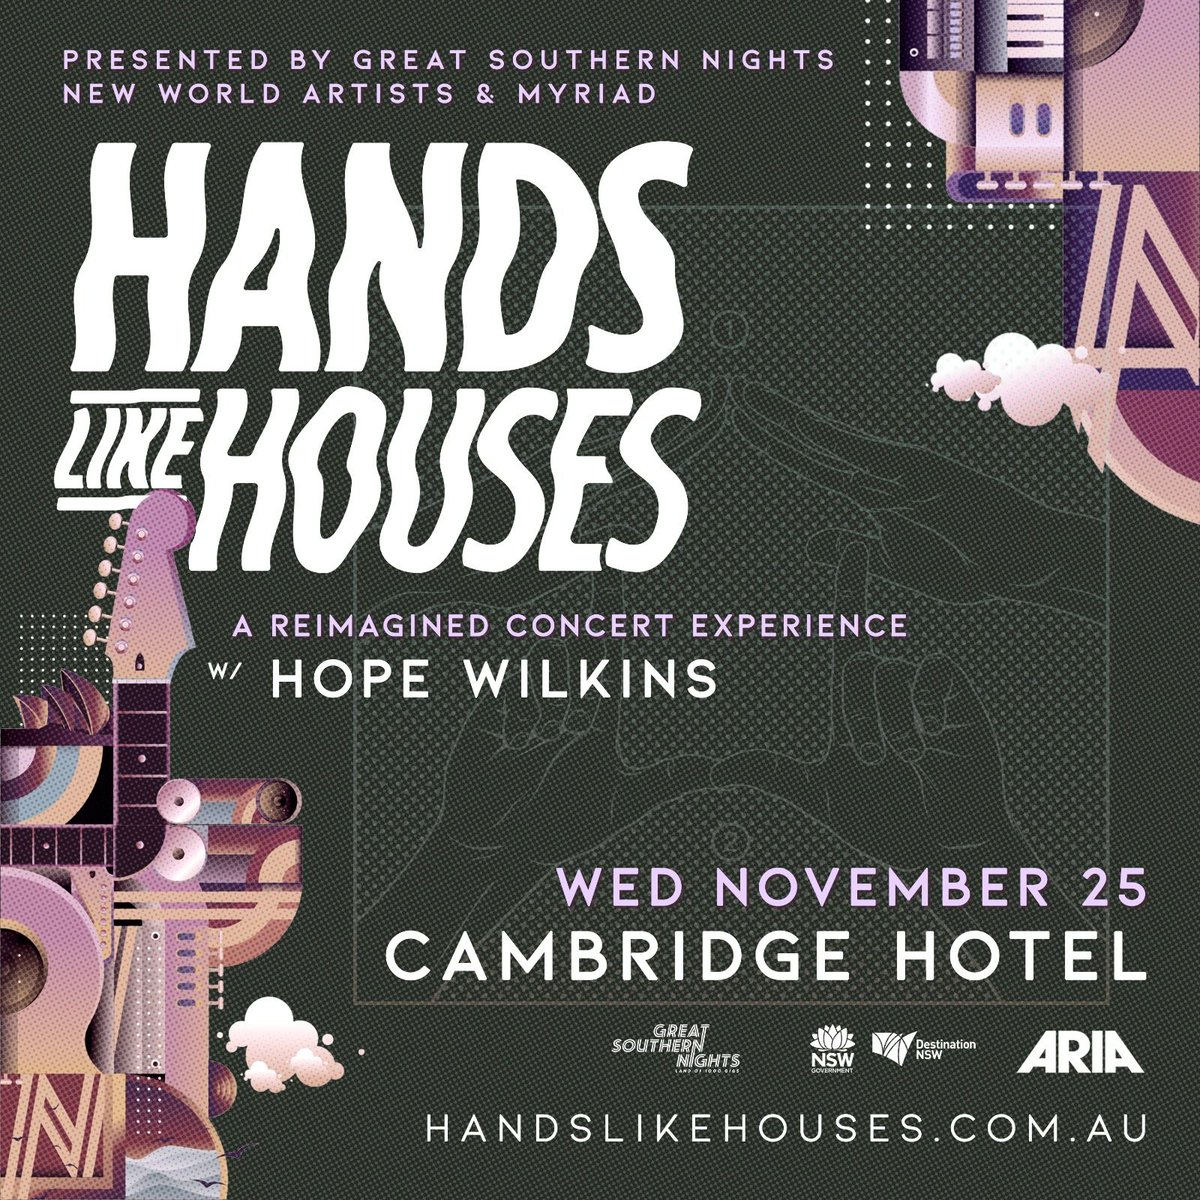 Tickets for @handslikehouses' Great Southern Nights acoustic show are on sale now!  https://t.co/GZ7GURD3CK https://t.co/rneTNETcUS